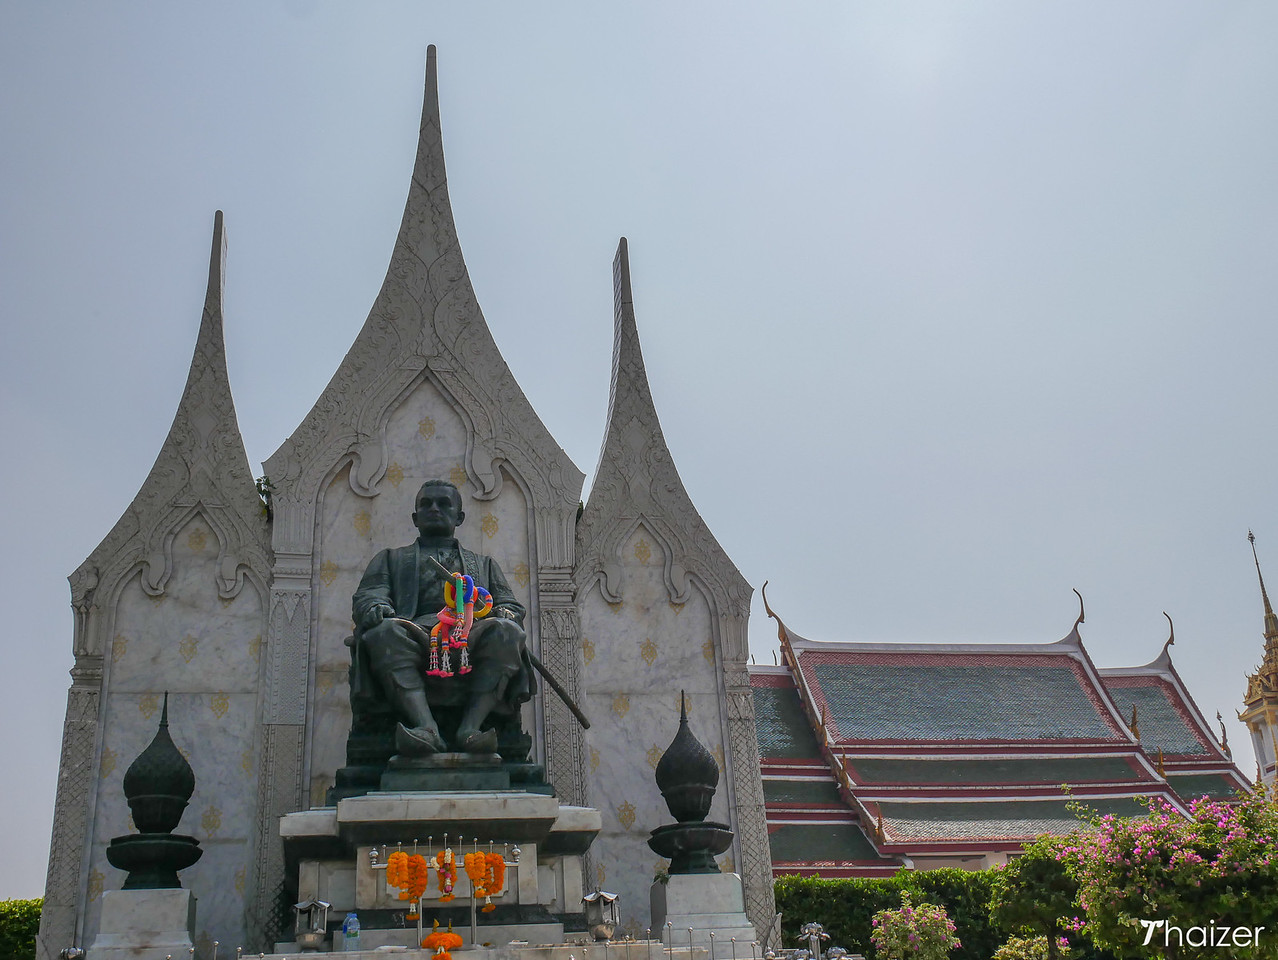 statue of King Rama III of Thailand